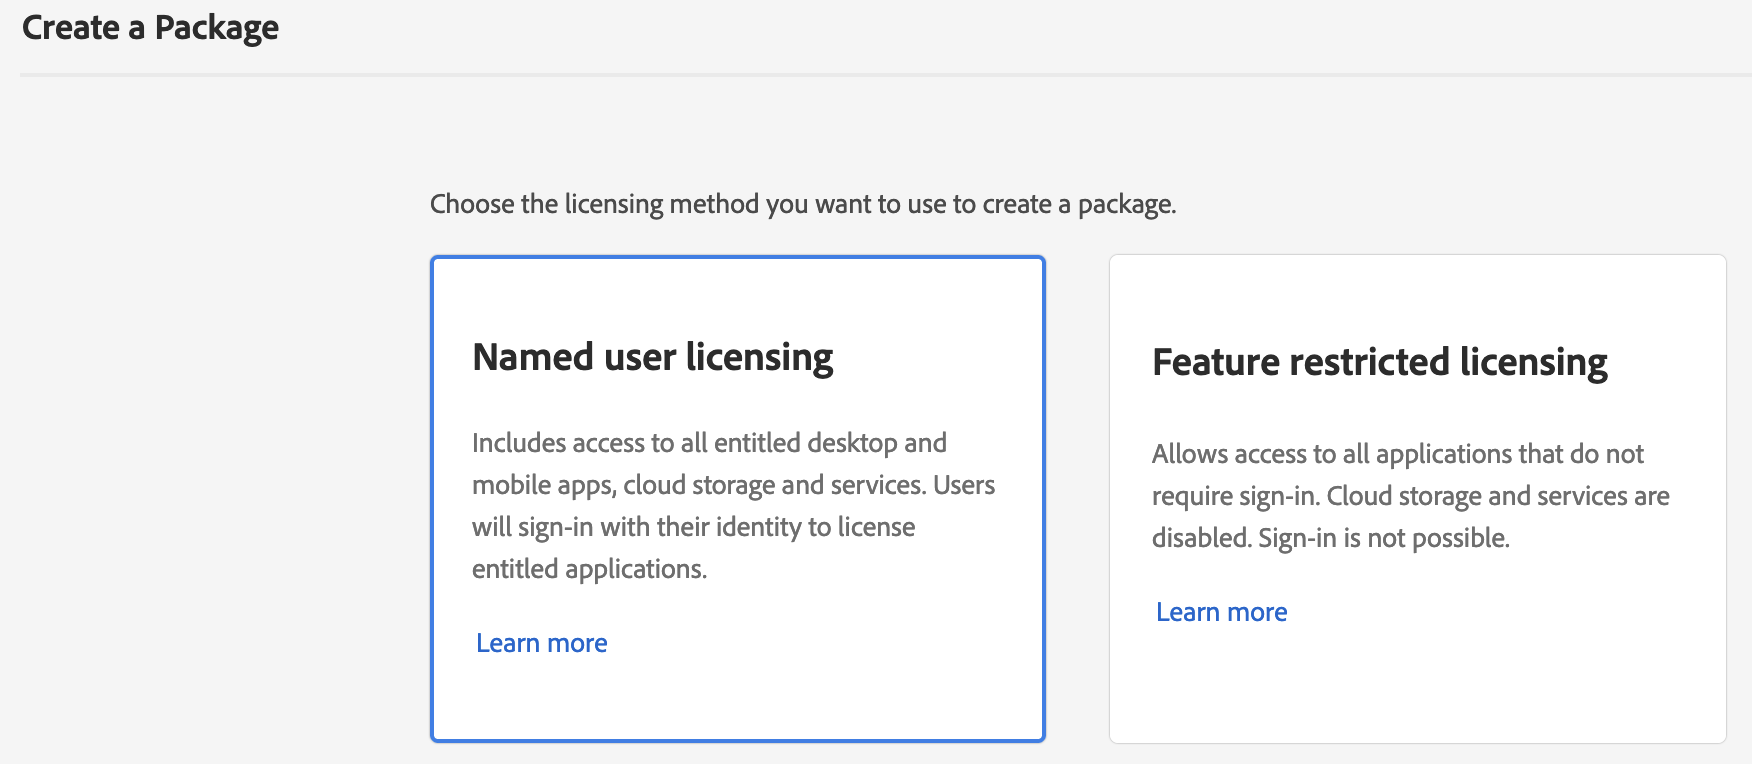 Adobe Admin Console - Create a Package - Licensing method